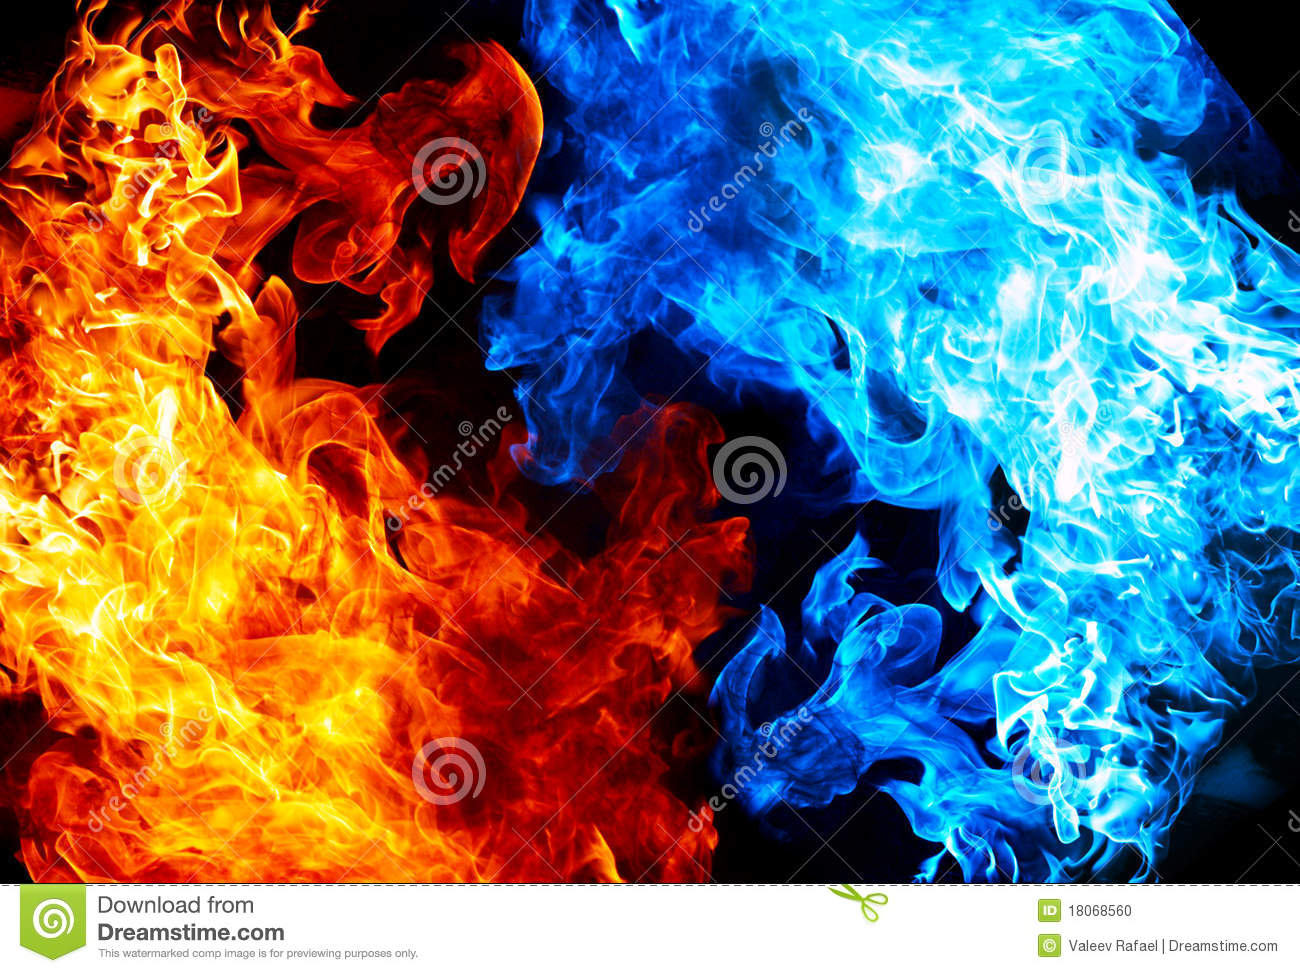 1300x973 - Red and Blue Fire 15